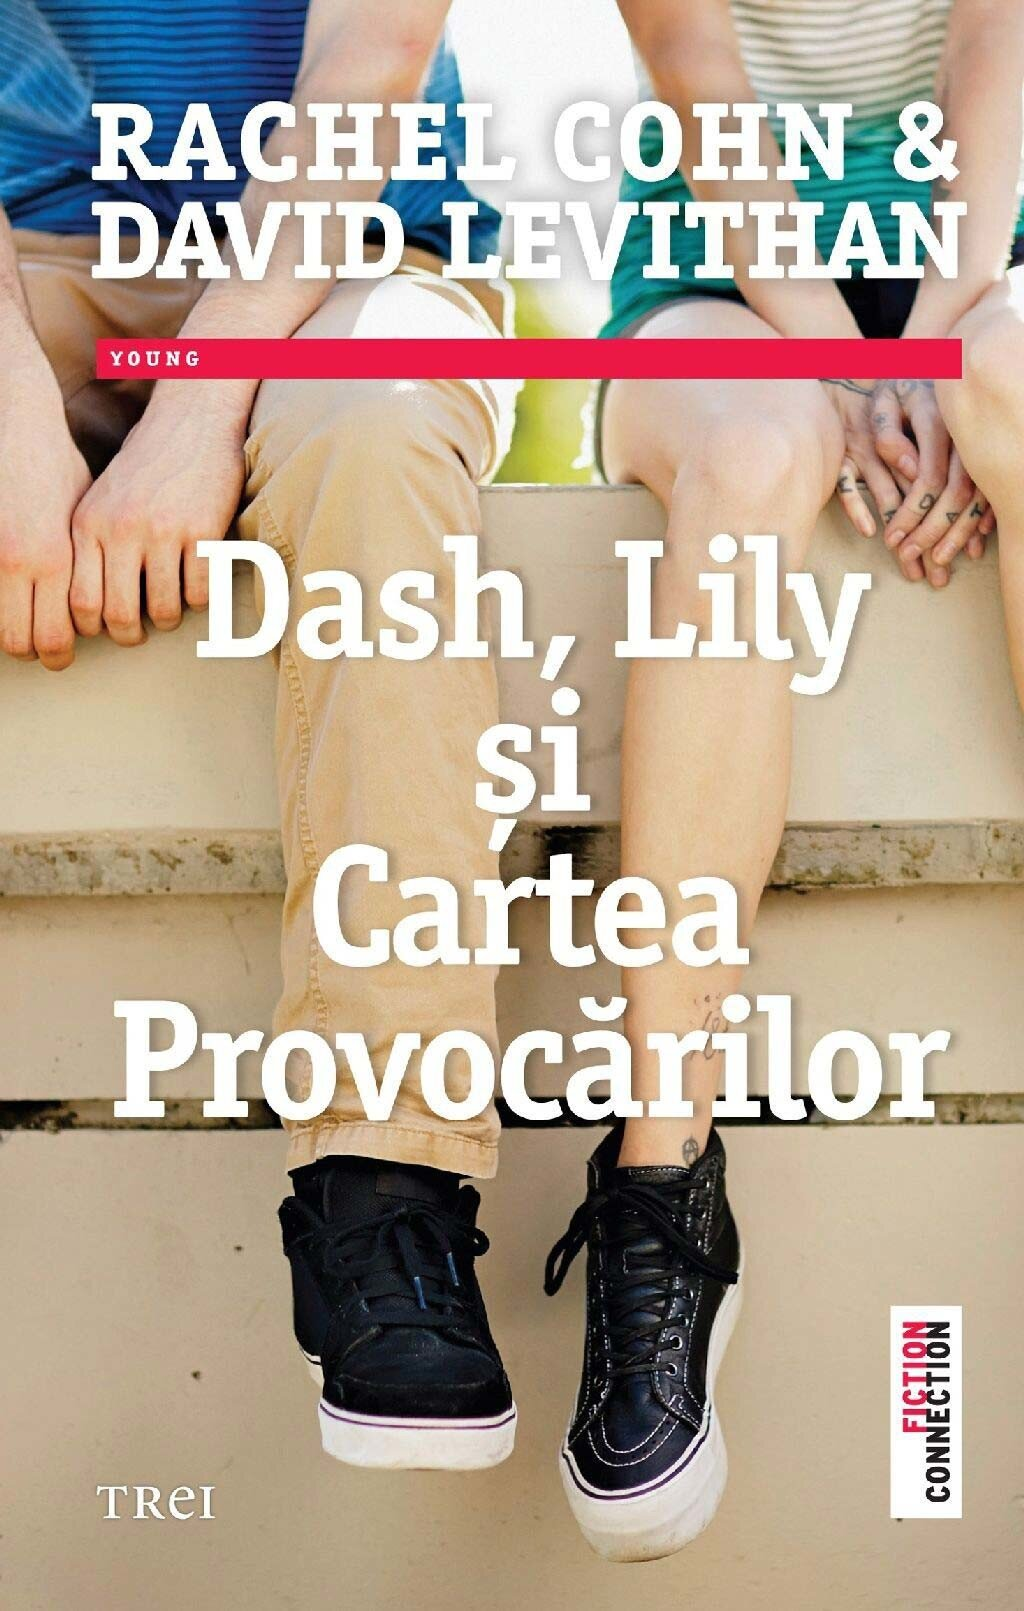 Dash, Lily si Cartea Provocarilor PDF (Download eBook)